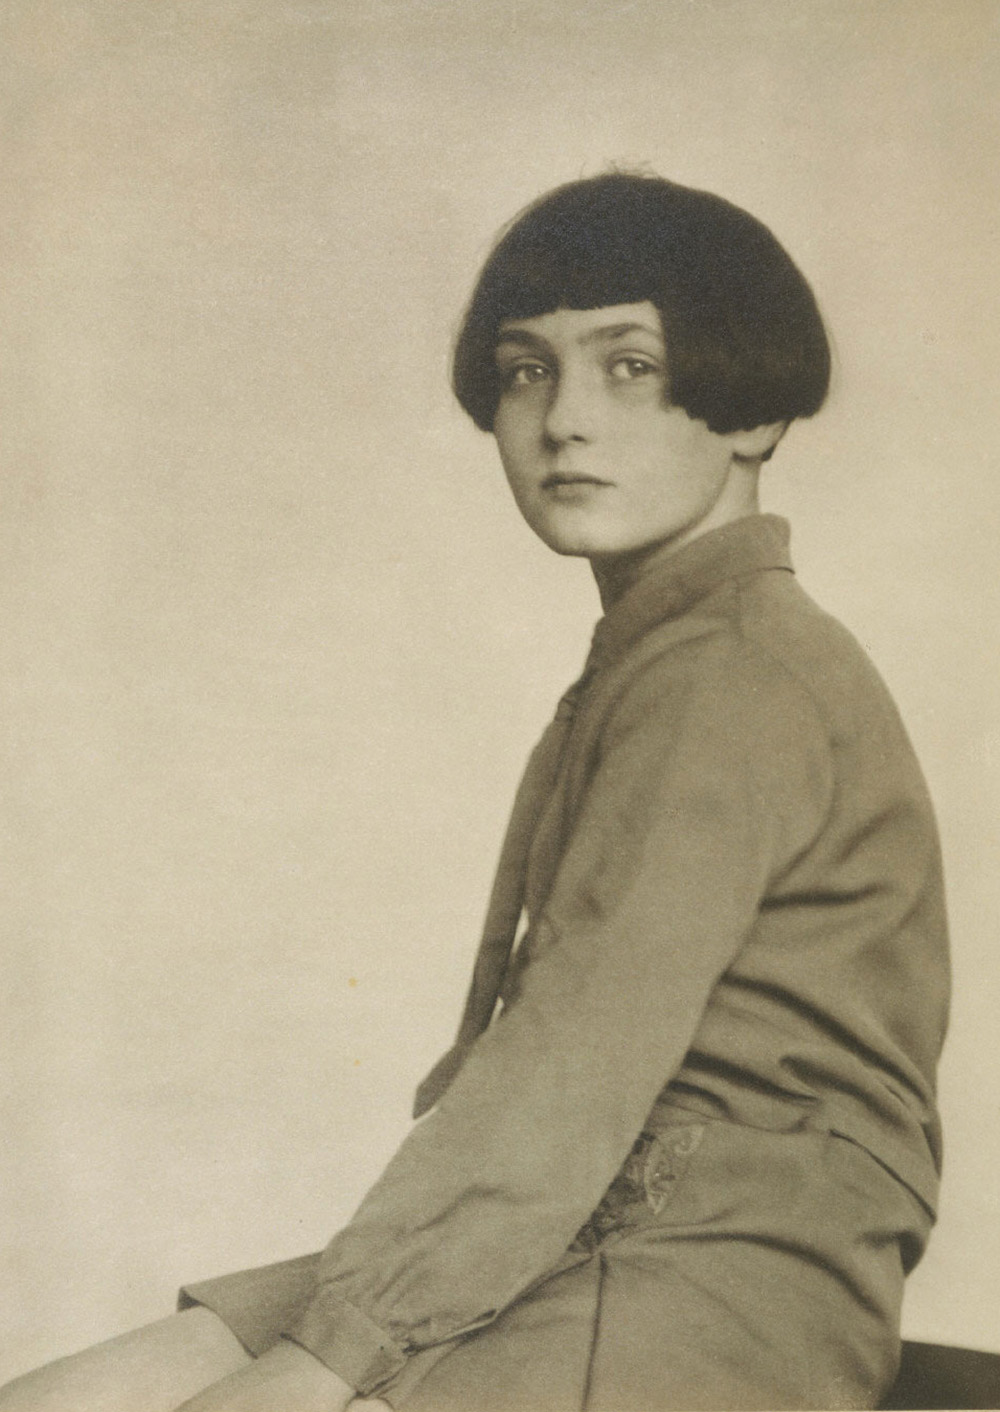 Fabienne Lloyd, 1928. Photograph by Berenice Abbott. The Philadelphia Museum of Art, 125th Anniversary Acquisition. The Lynne and Harold Honickman Gift of the Julien Levy Collection, 2001.